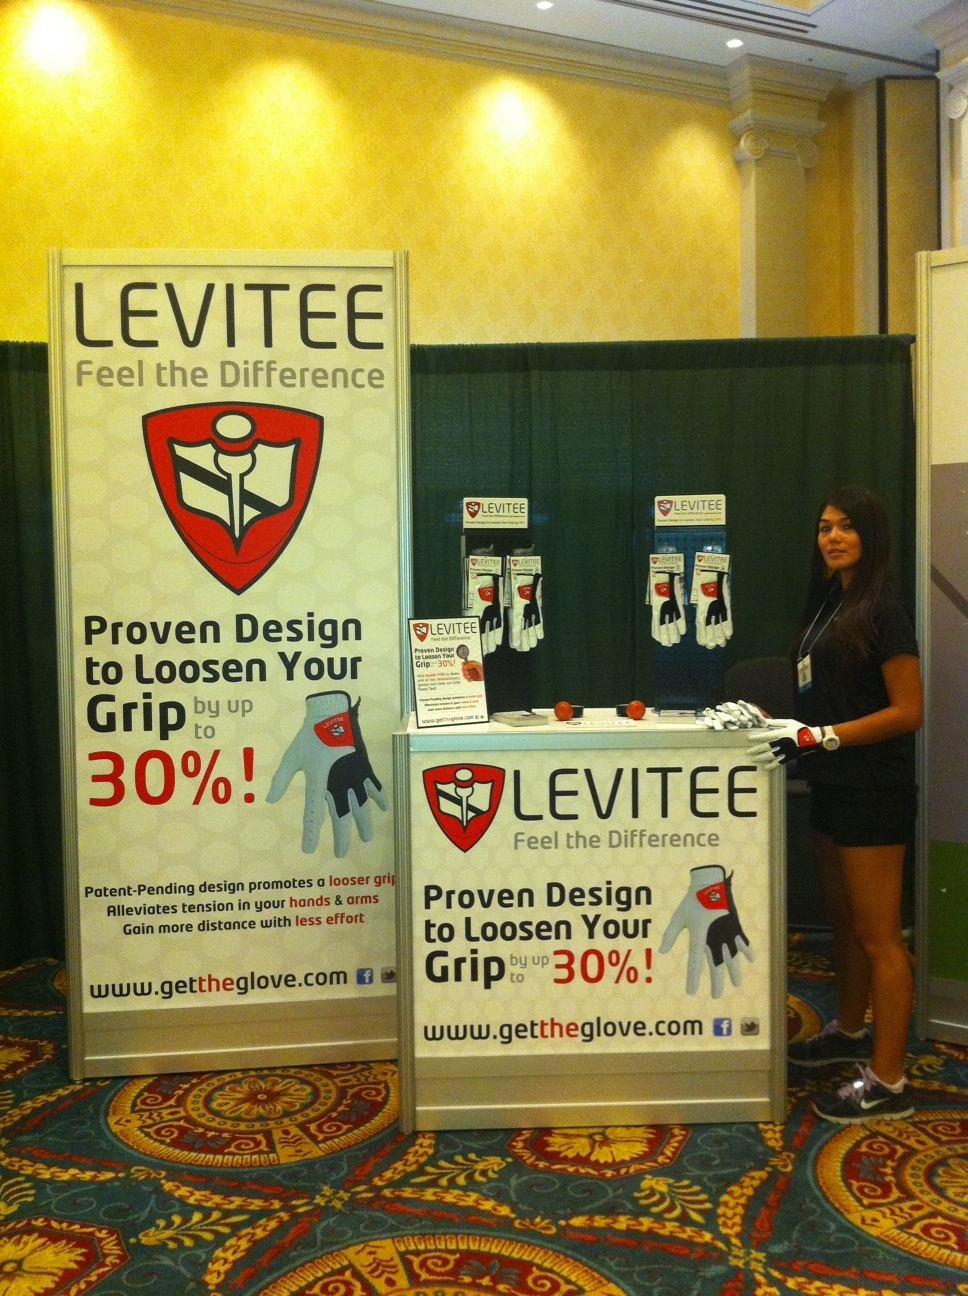 LeviTee Booth at the PGA Show 2011